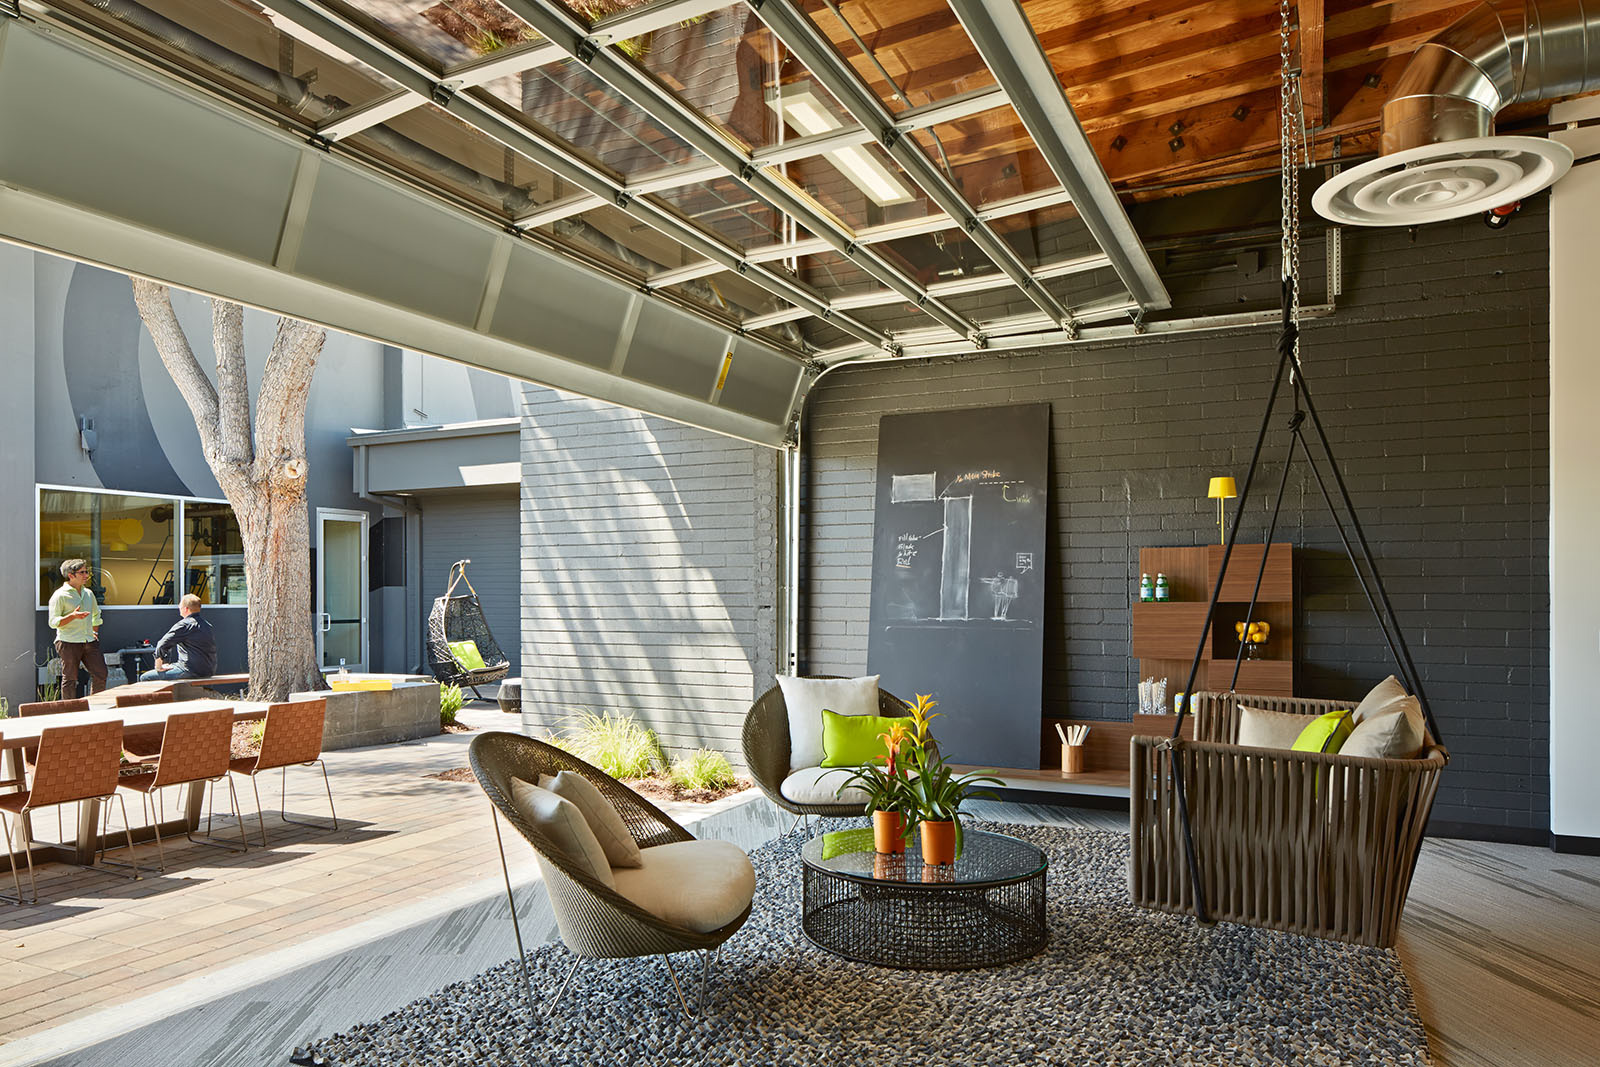 One Workplace - Outdoor office with open garage breakout area